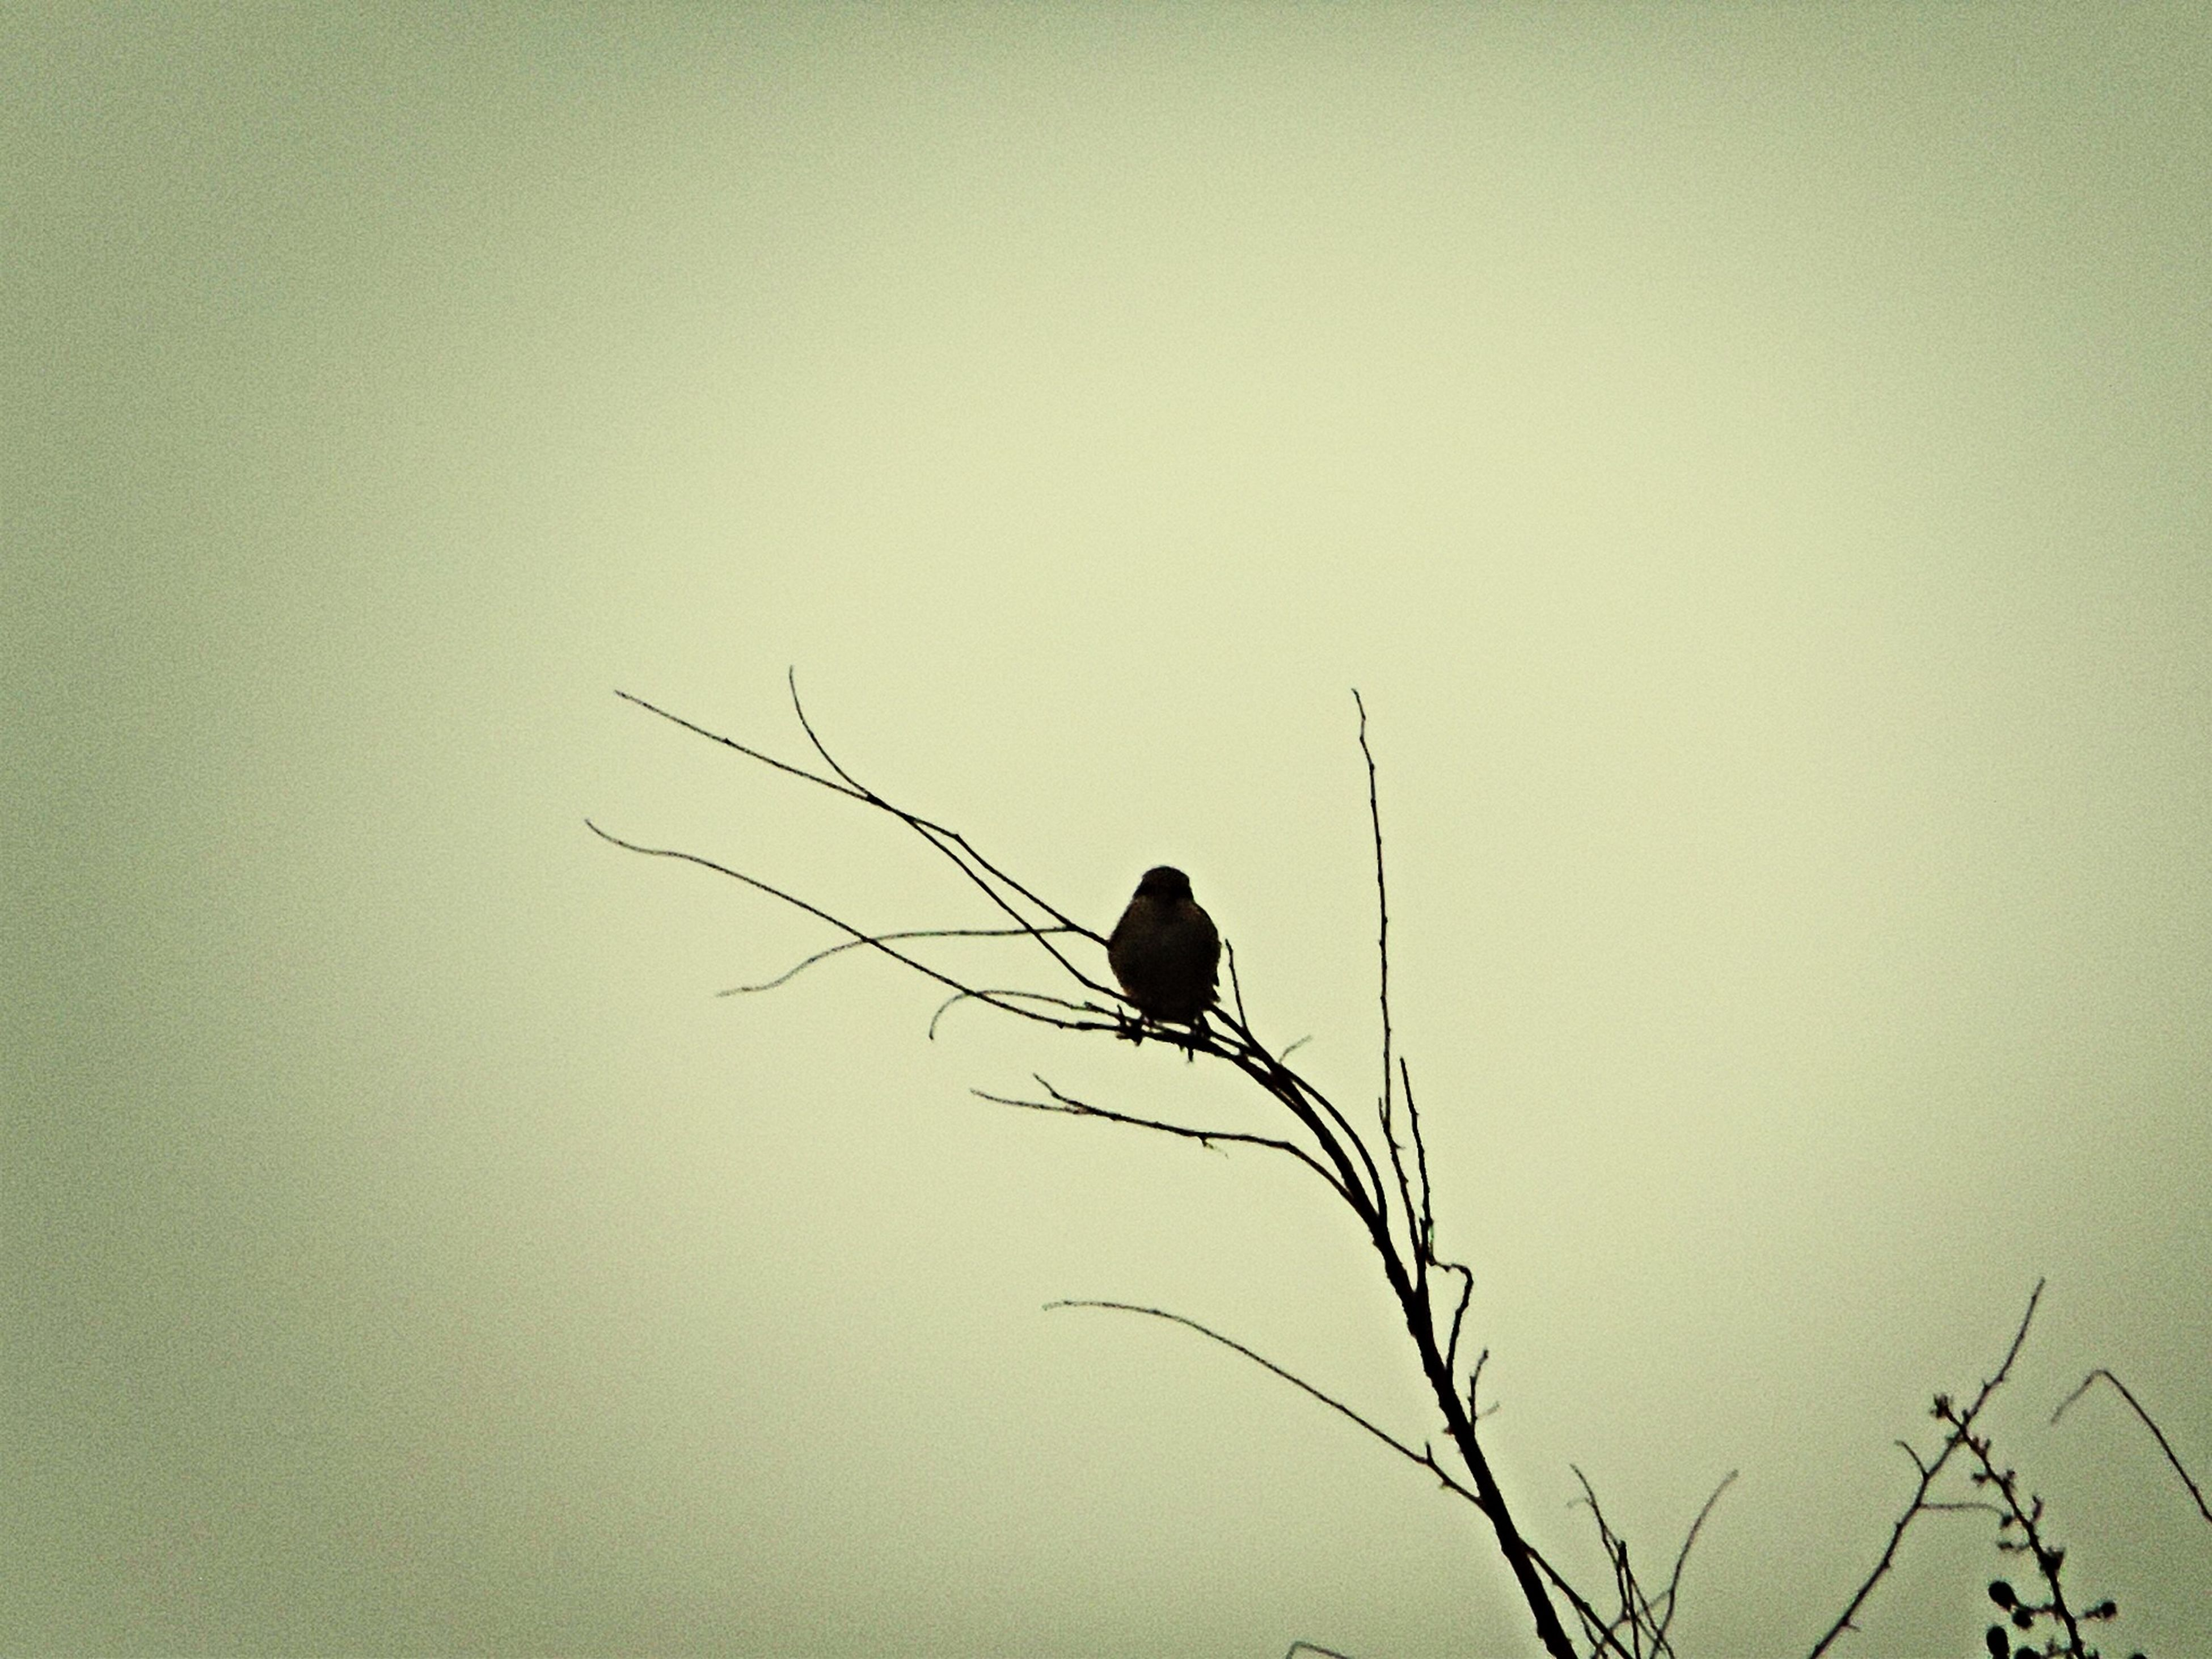 animal themes, one animal, silhouette, animals in the wild, wildlife, bird, perching, low angle view, bare tree, clear sky, branch, nature, copy space, full length, outdoors, tranquility, no people, day, dusk, beauty in nature